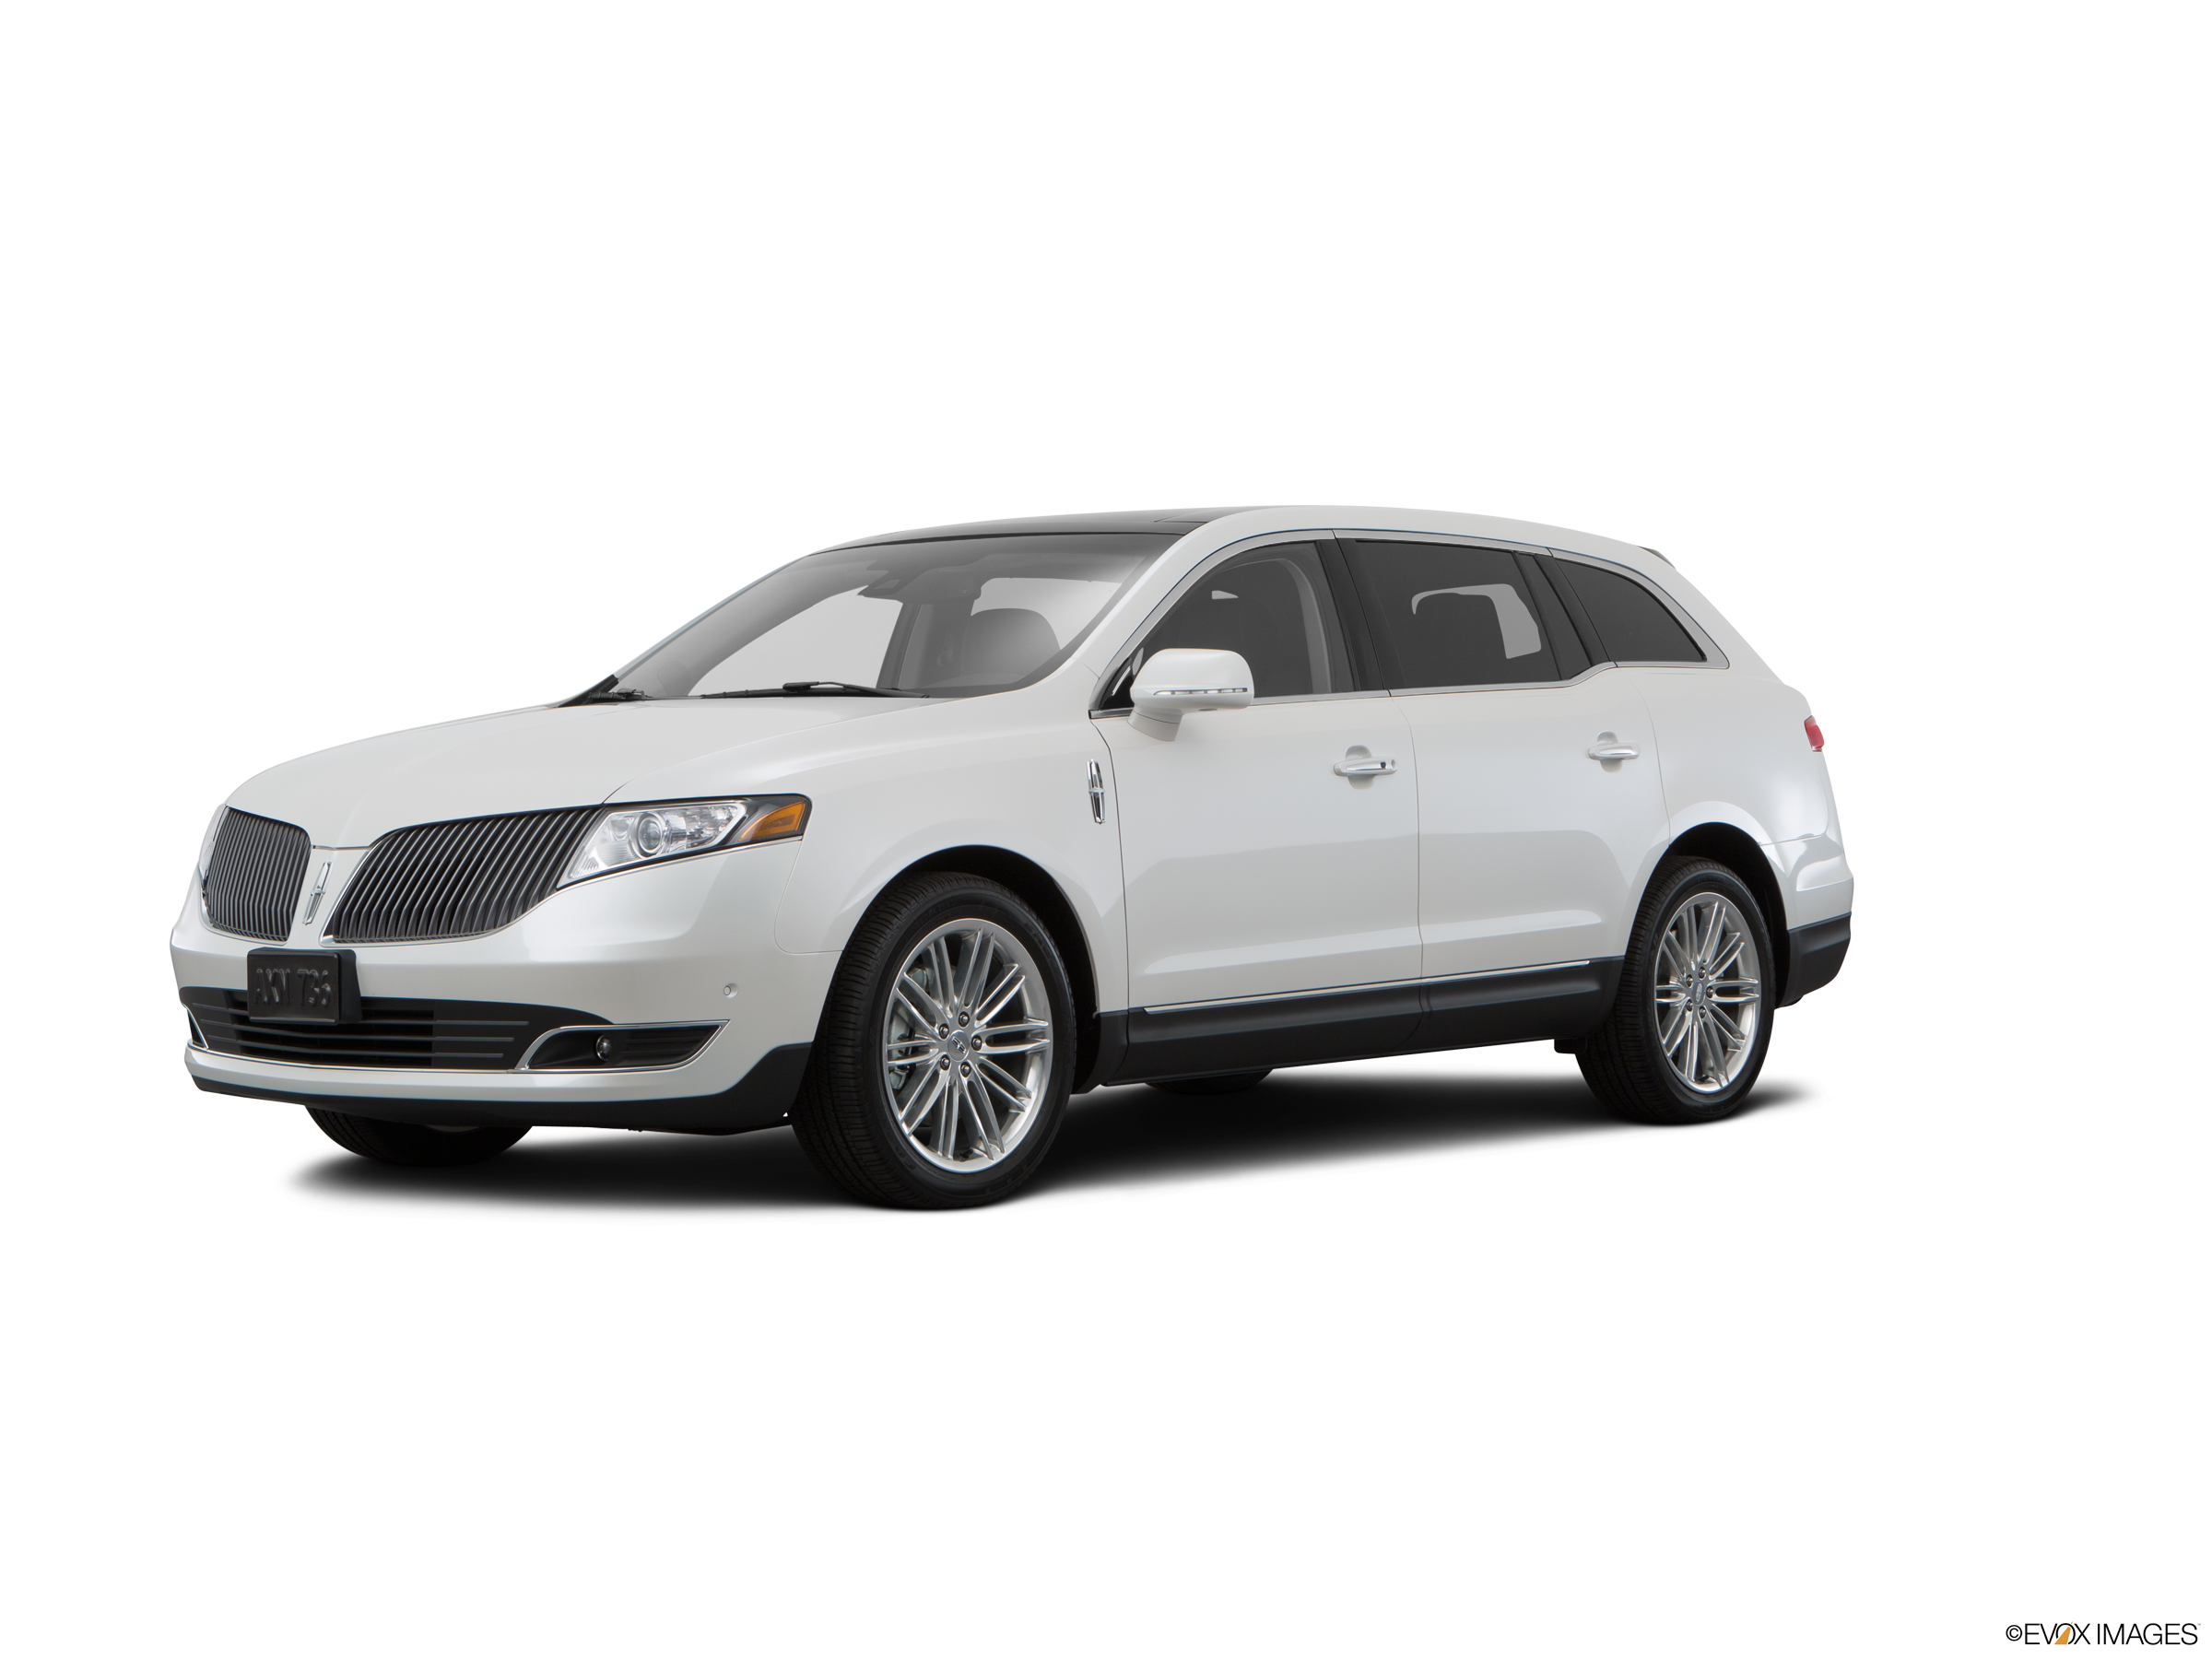 2016 Lincoln Mkt >> 2016 Lincoln Mkt Pricing Reviews Ratings Kelley Blue Book